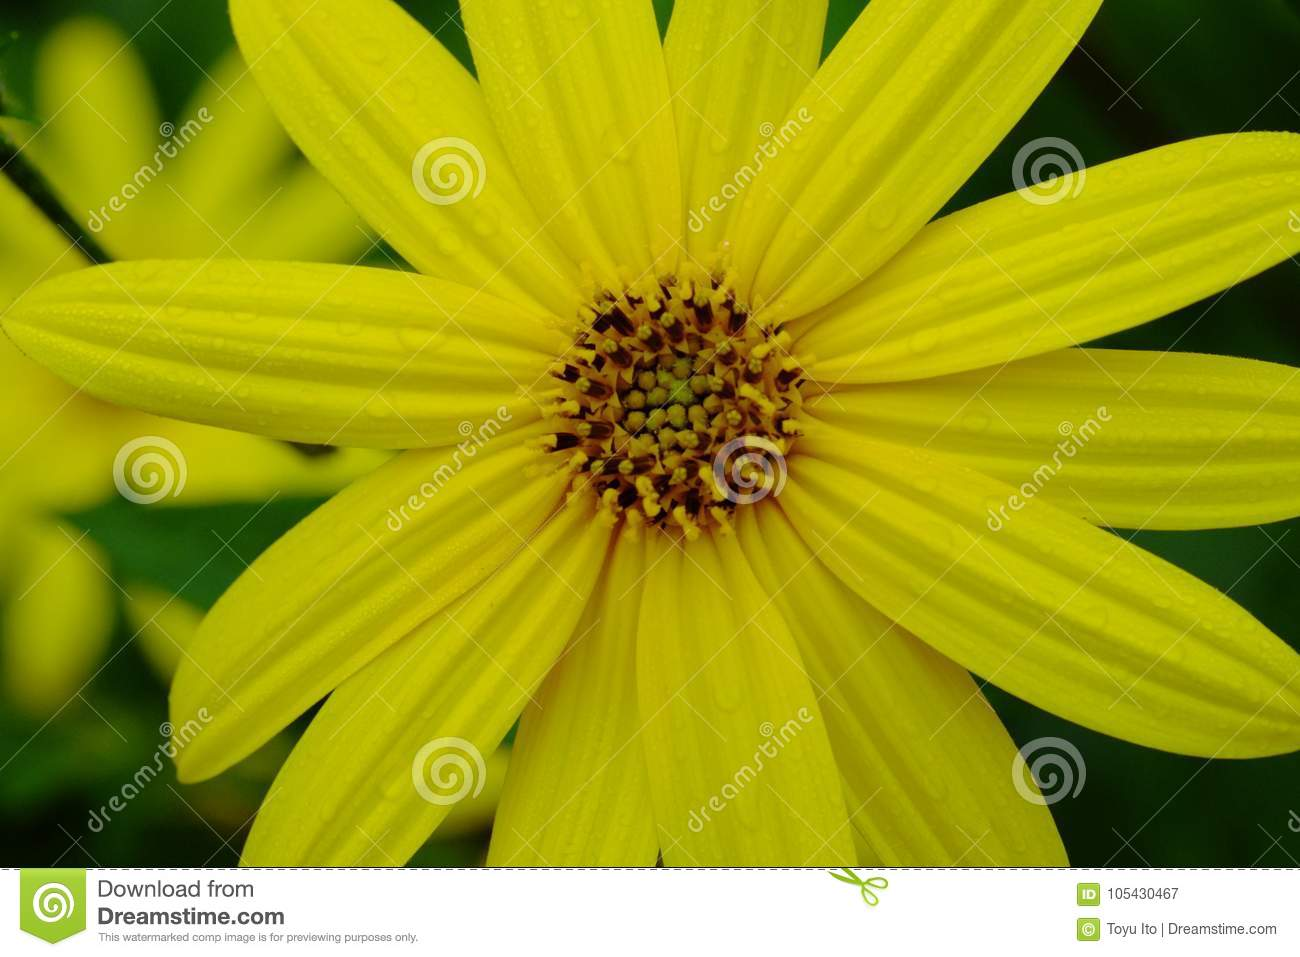 A Flower Of Chrysanthemum That Makes Beautiful Yellow Flowers